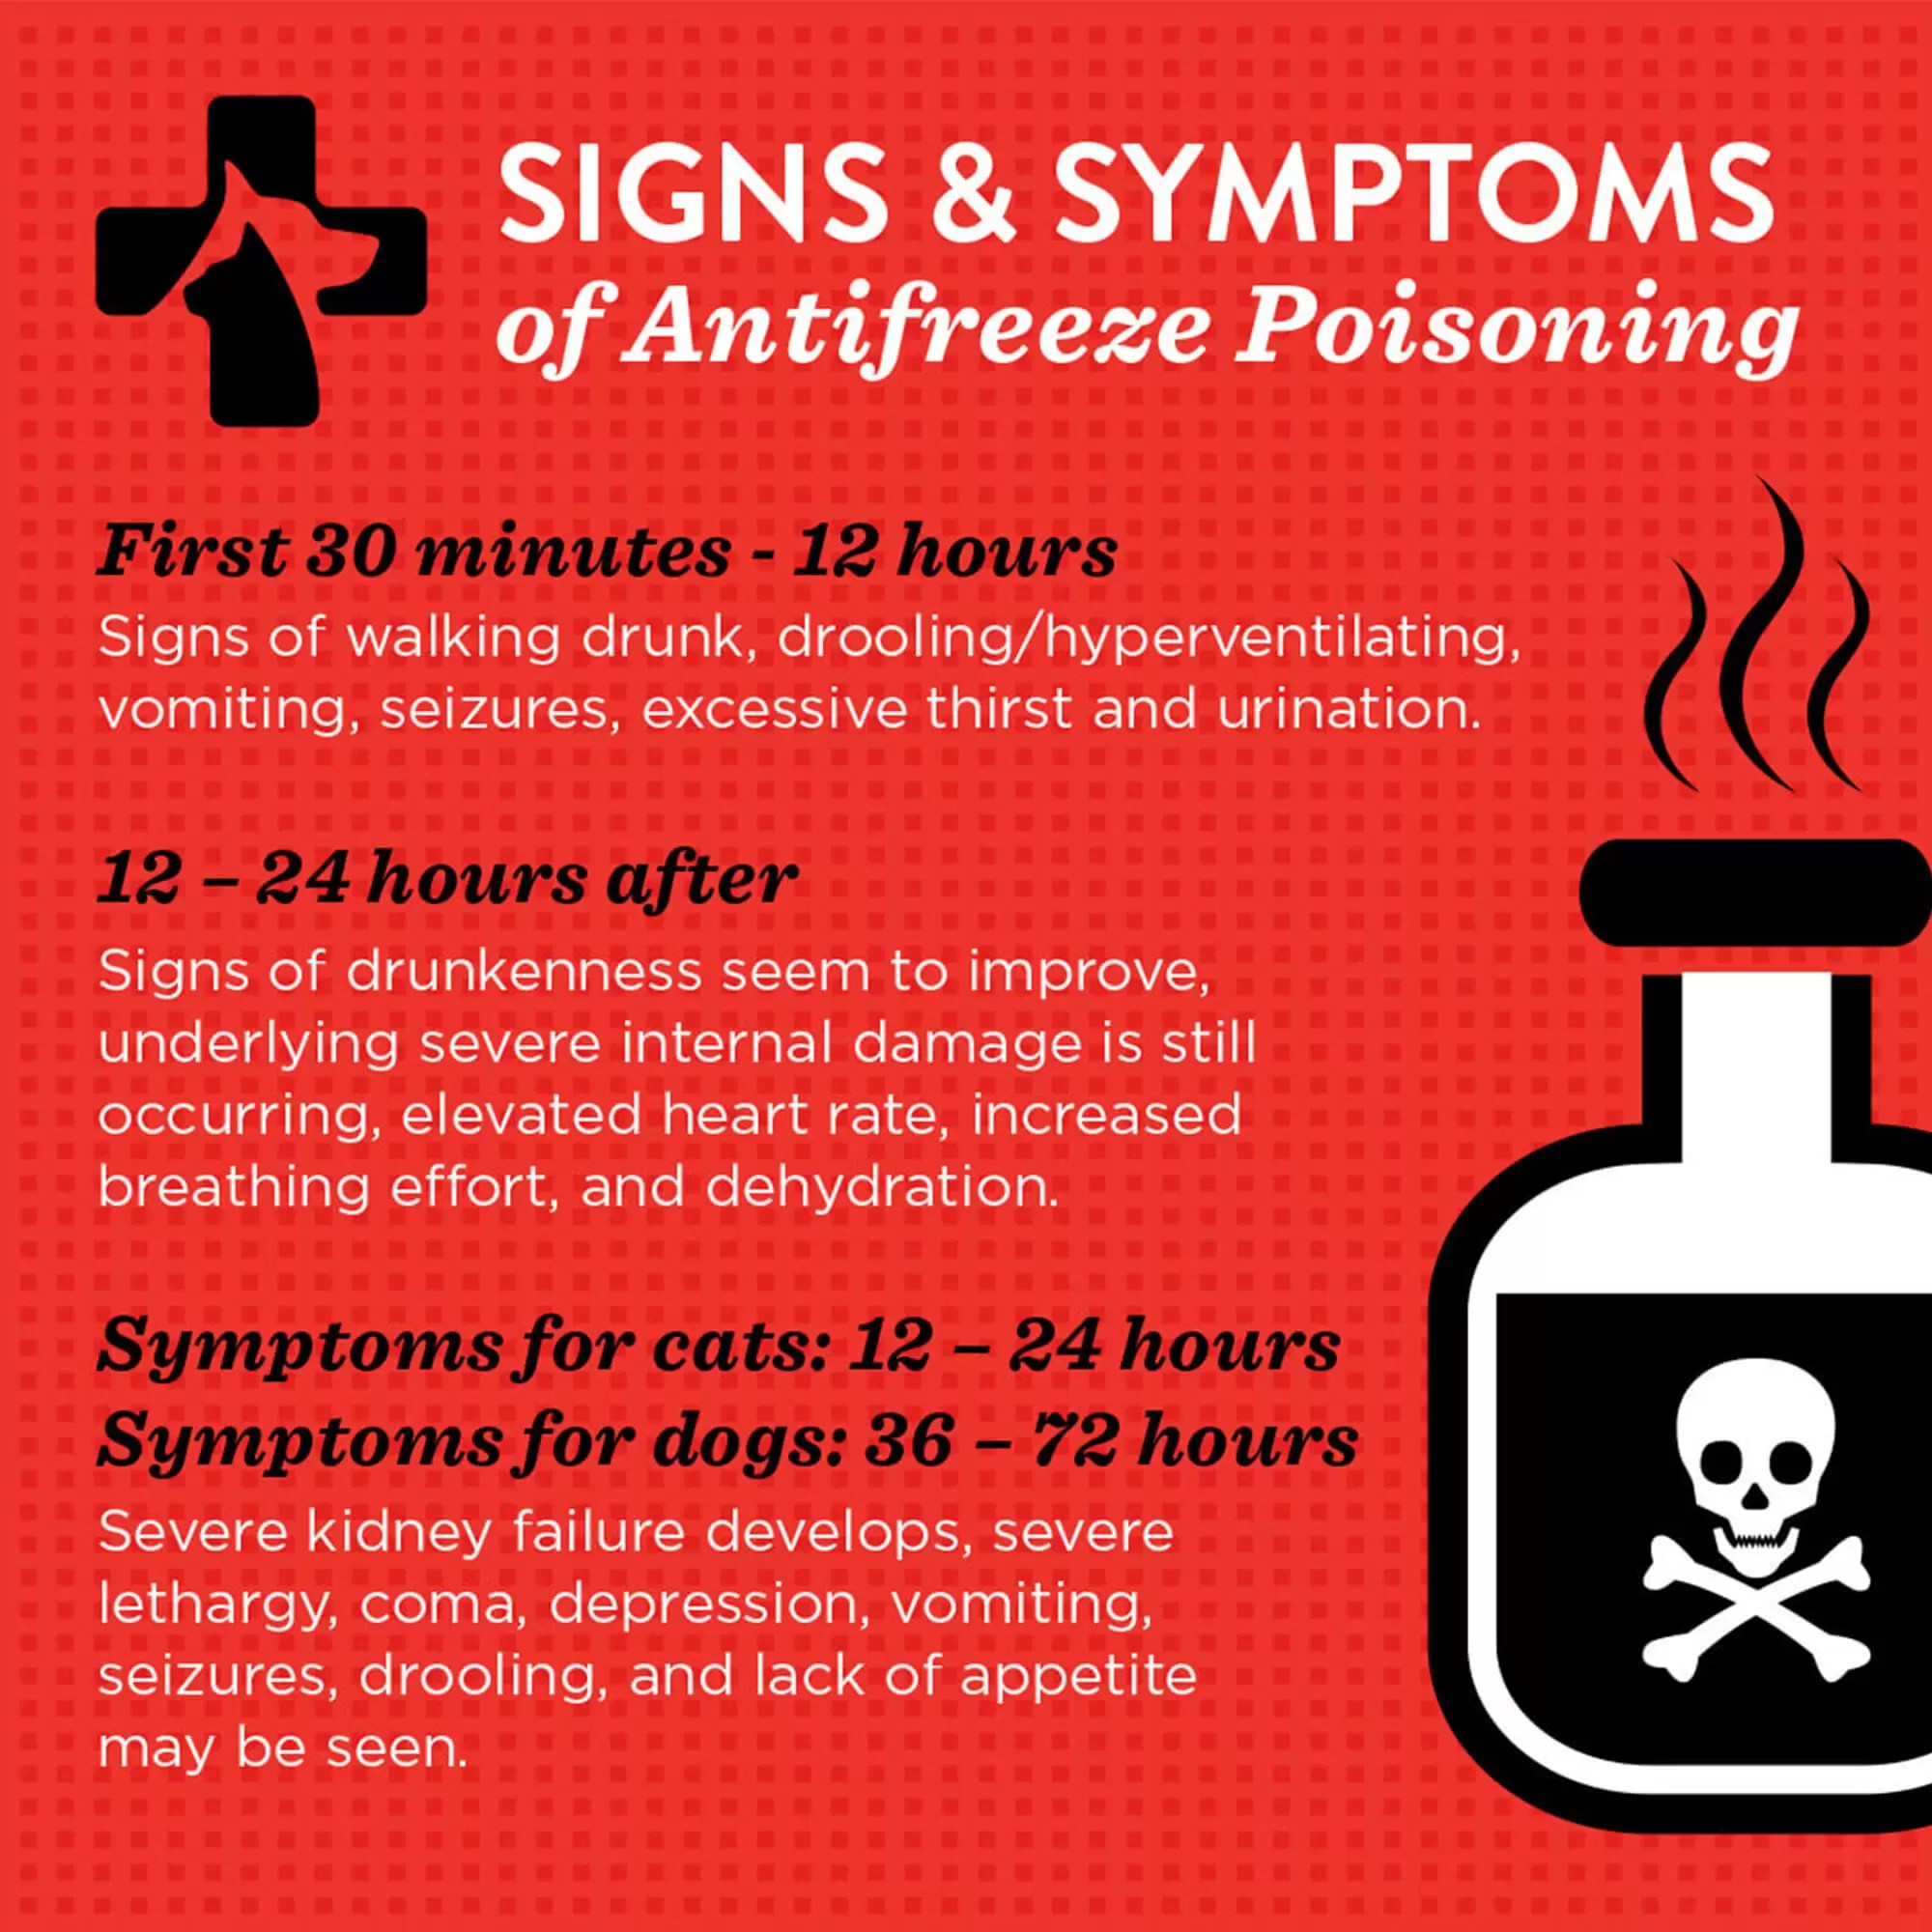 A graphic with signs and symptoms of antifreeze poisoning used on social media for the Emergency Pet Clinic of Temecula